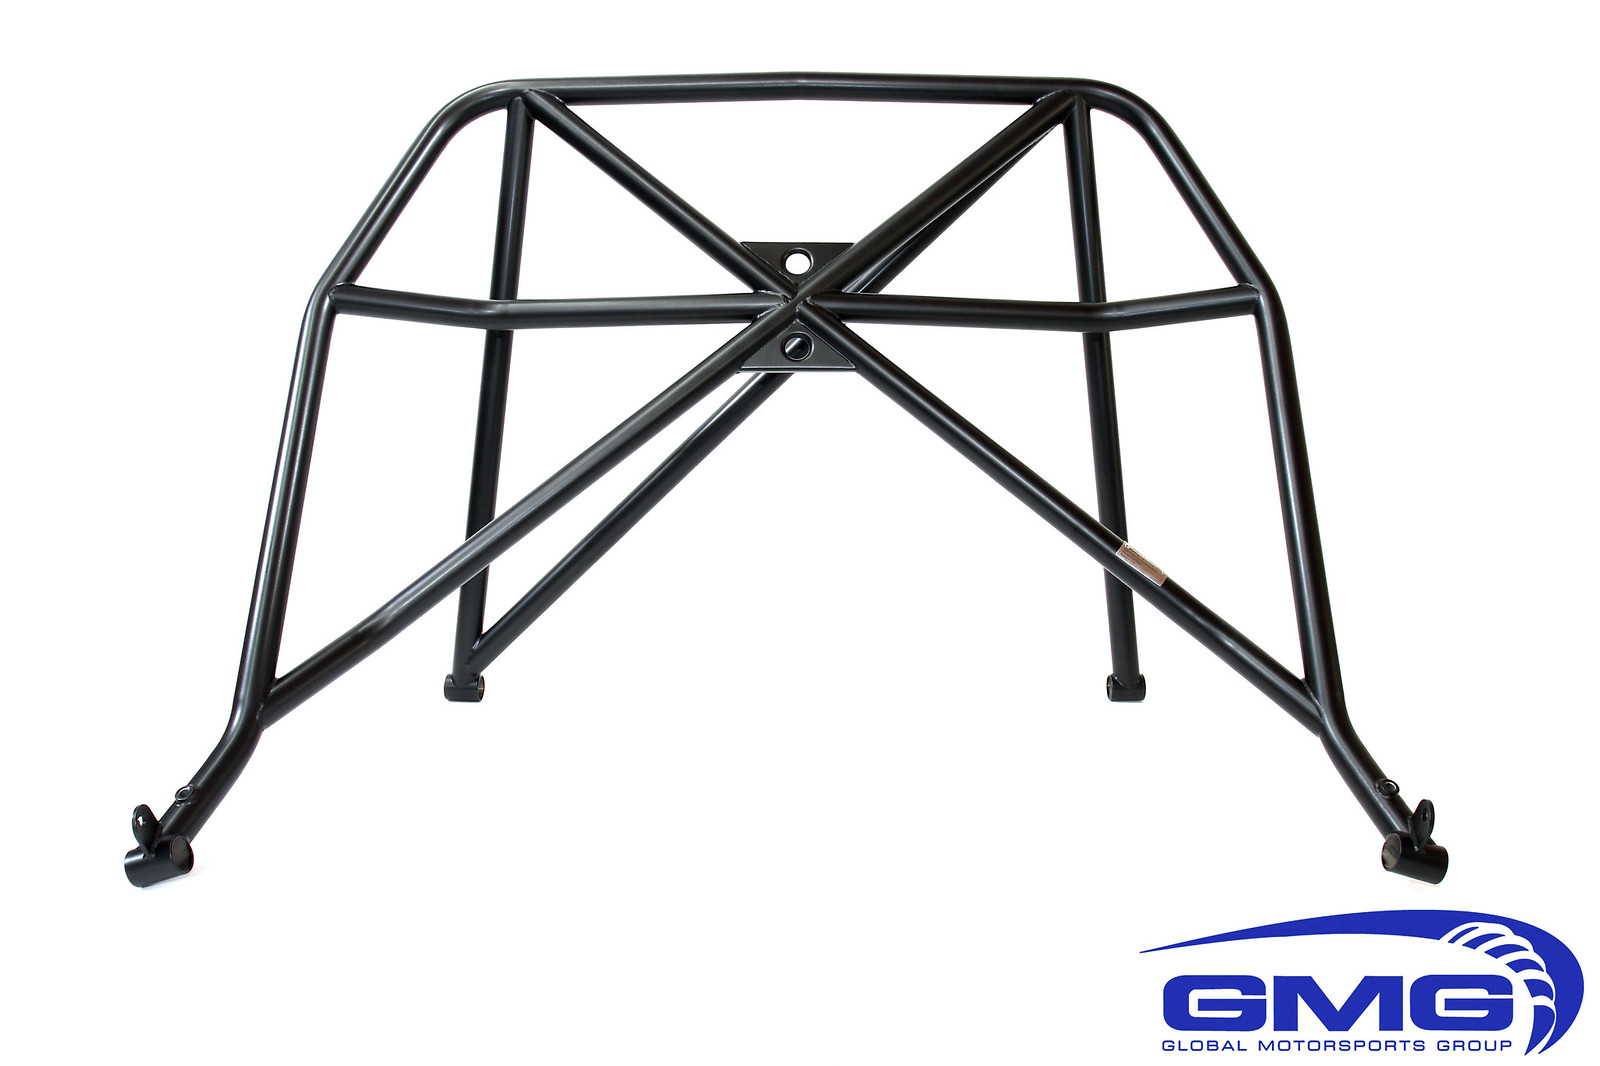 Gmg Racing Wc Roll Bar For Porsche 996 Gt2 Gt3 Now In Stock